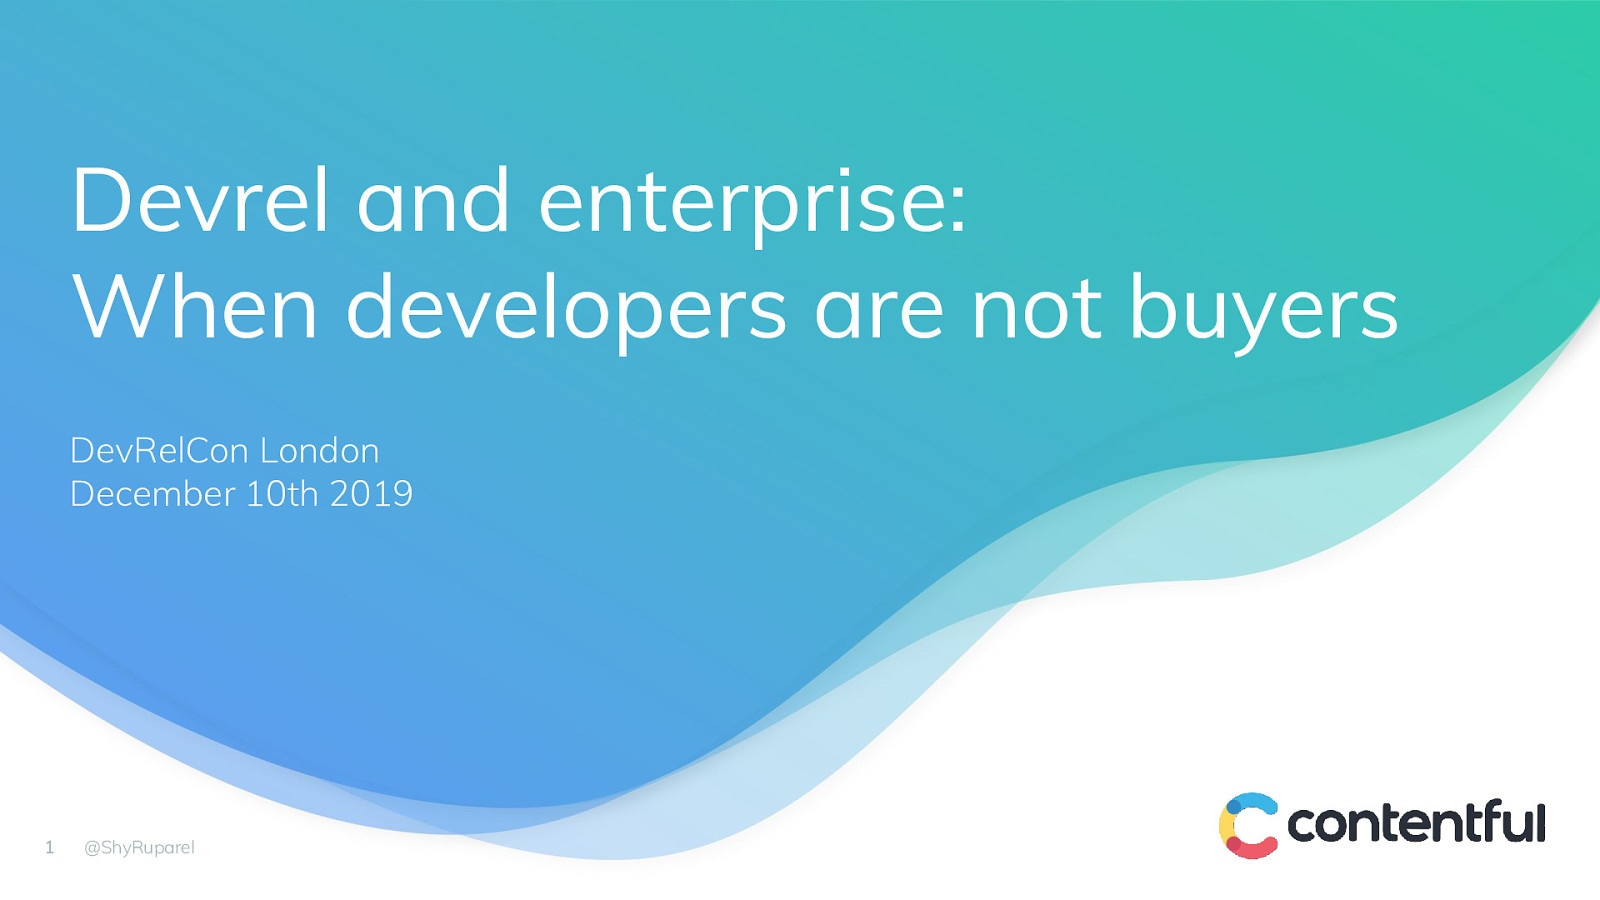 Devrel and enterprise: When developers are not buyers